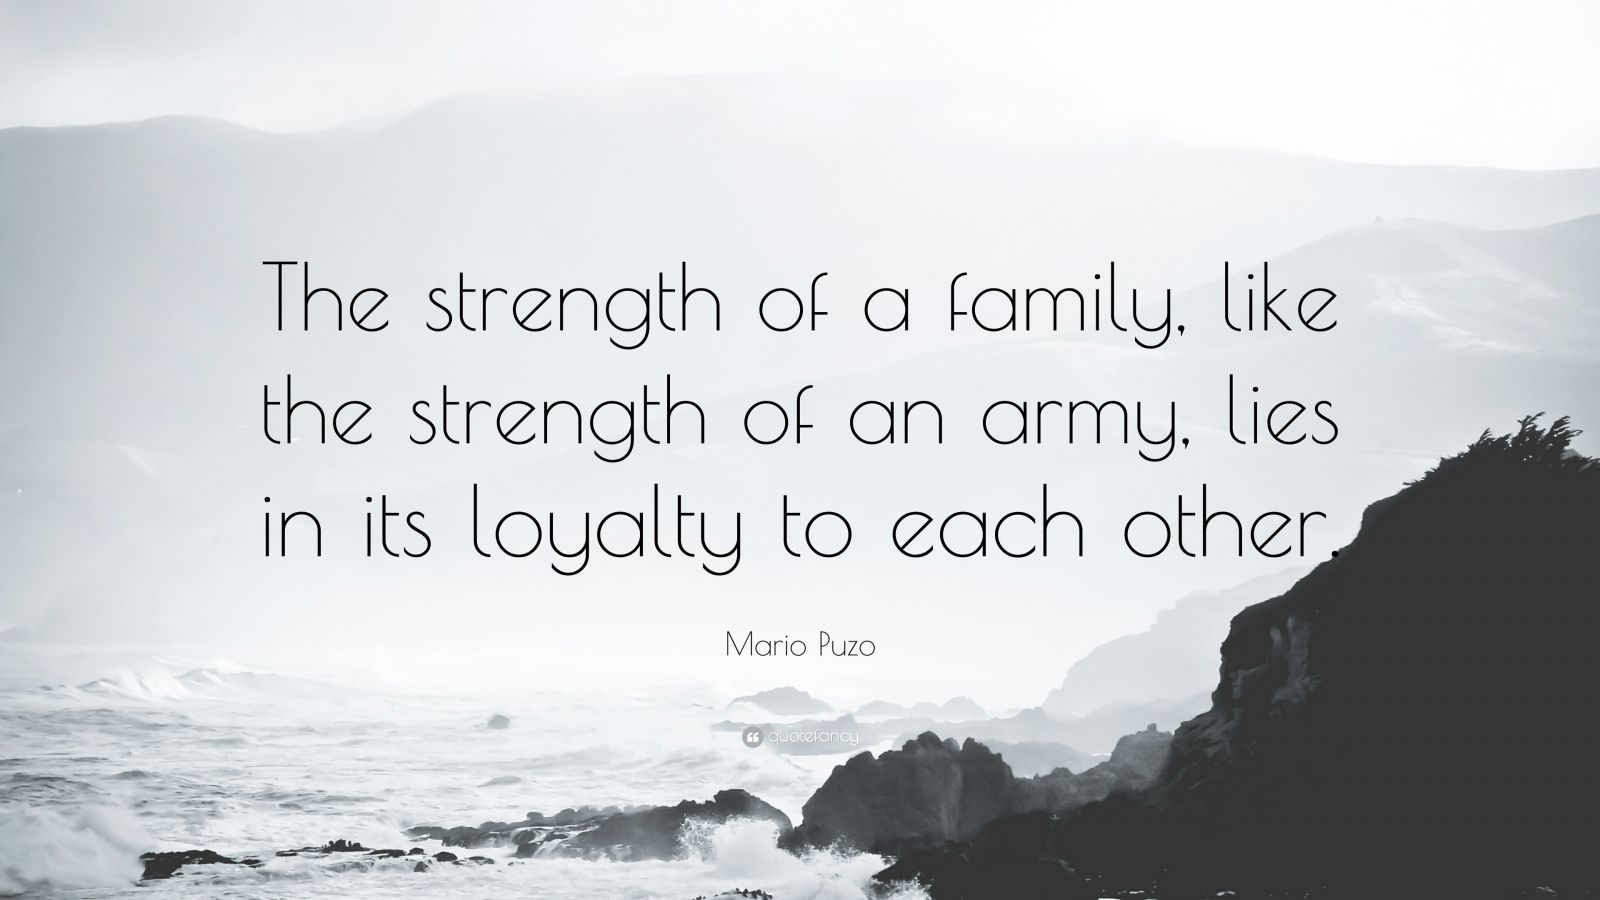 """Mario Puzo Quote: """"The strength of a family, like the strength of an army, lies in its loyalty to each other."""""""